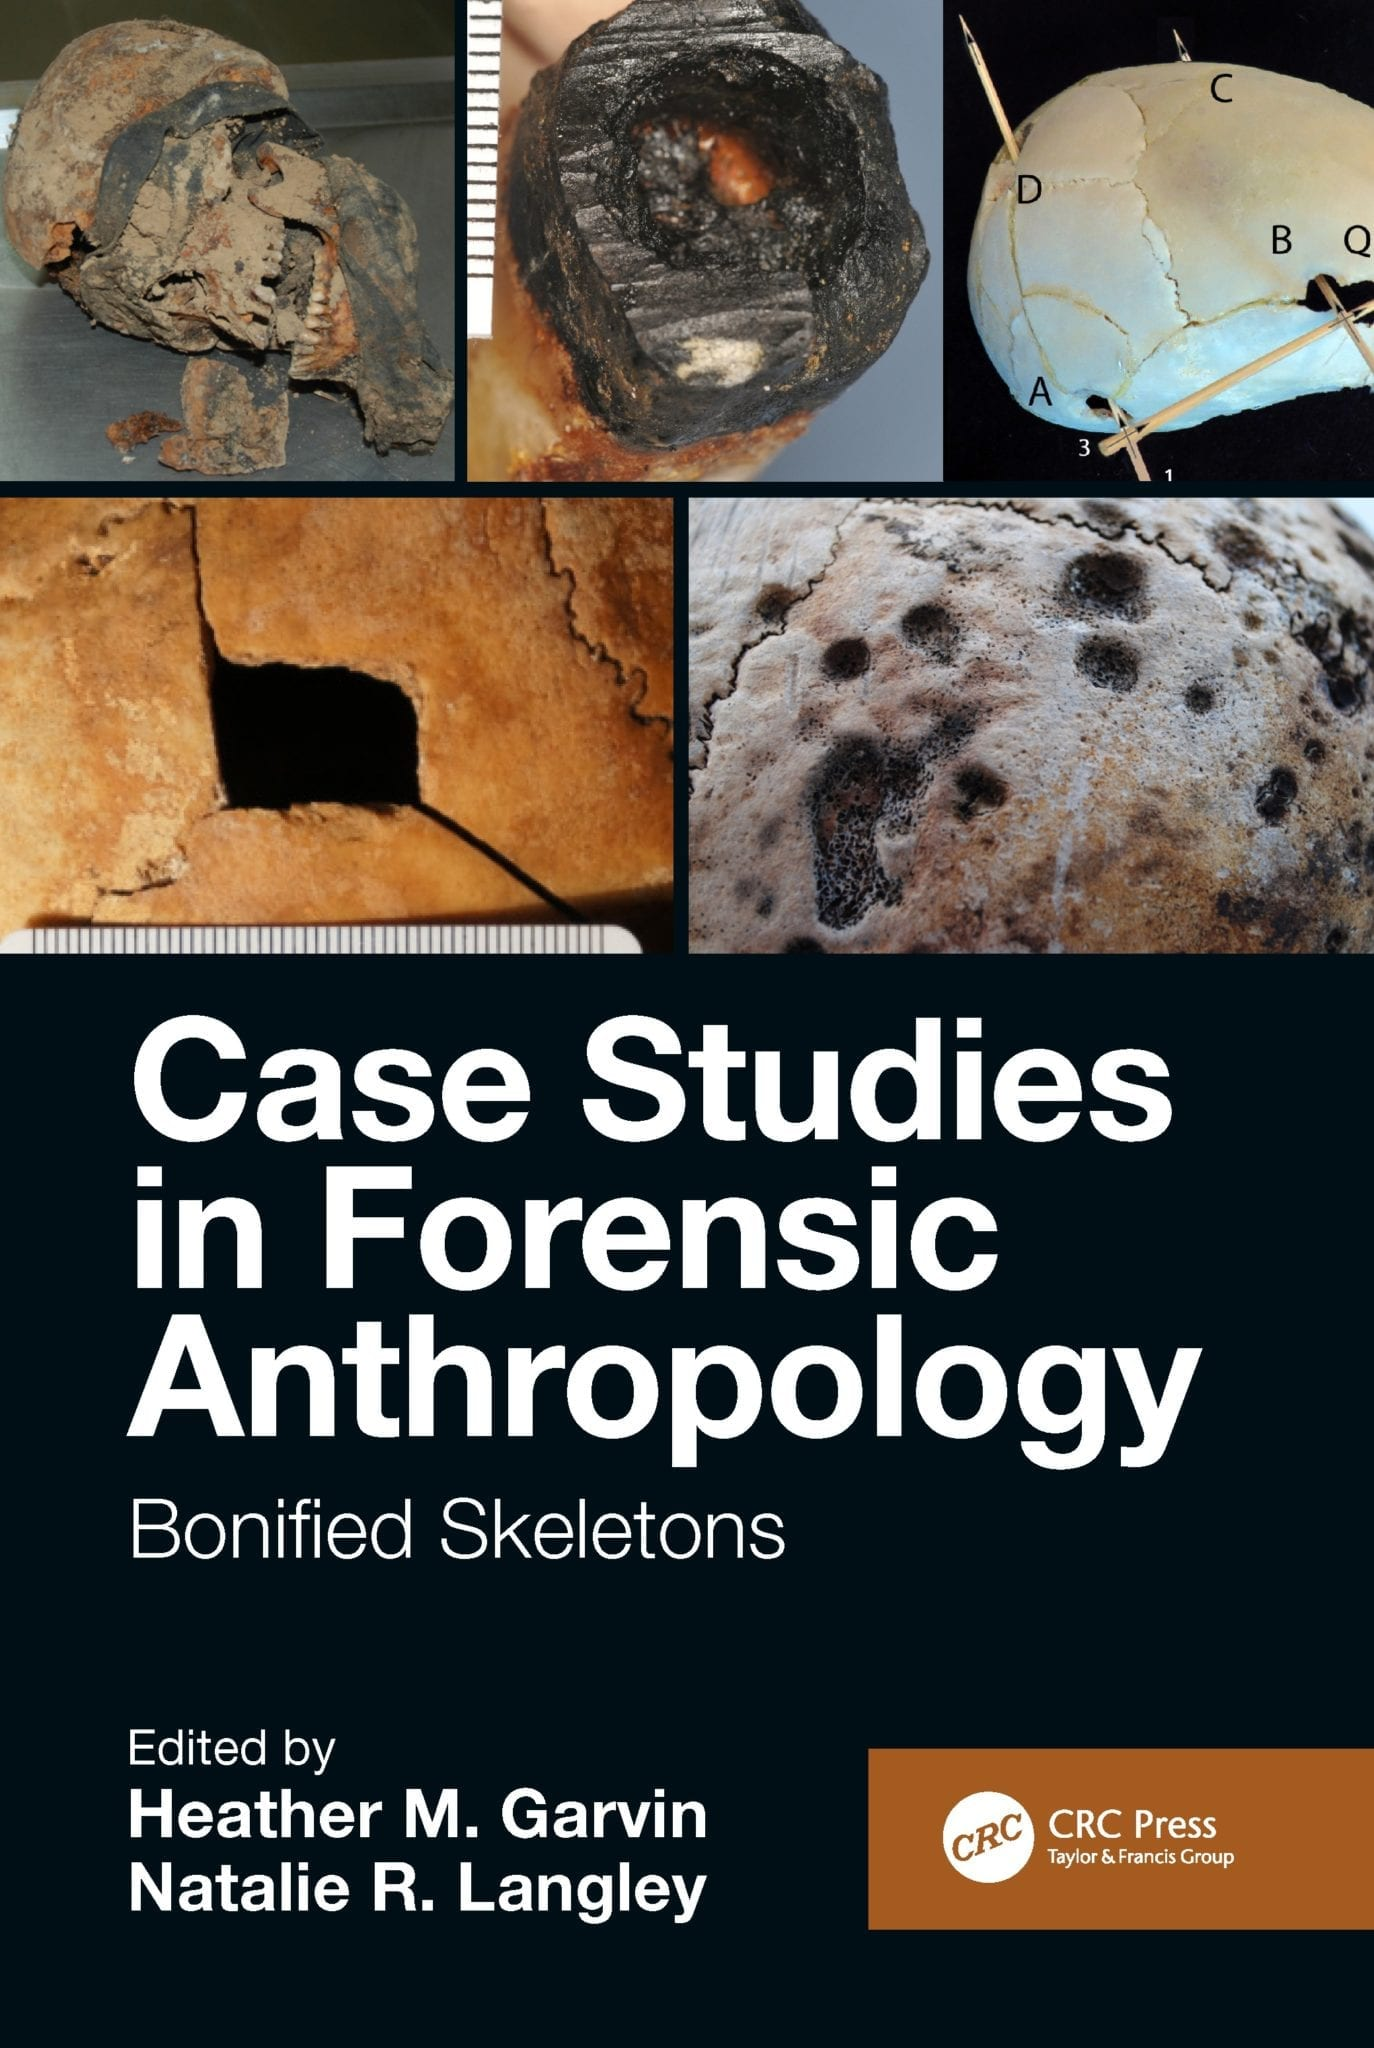 The Body In The Barrel And Other Mysteries New Book Shows Forensic Anthropology In Action News Des Moines University